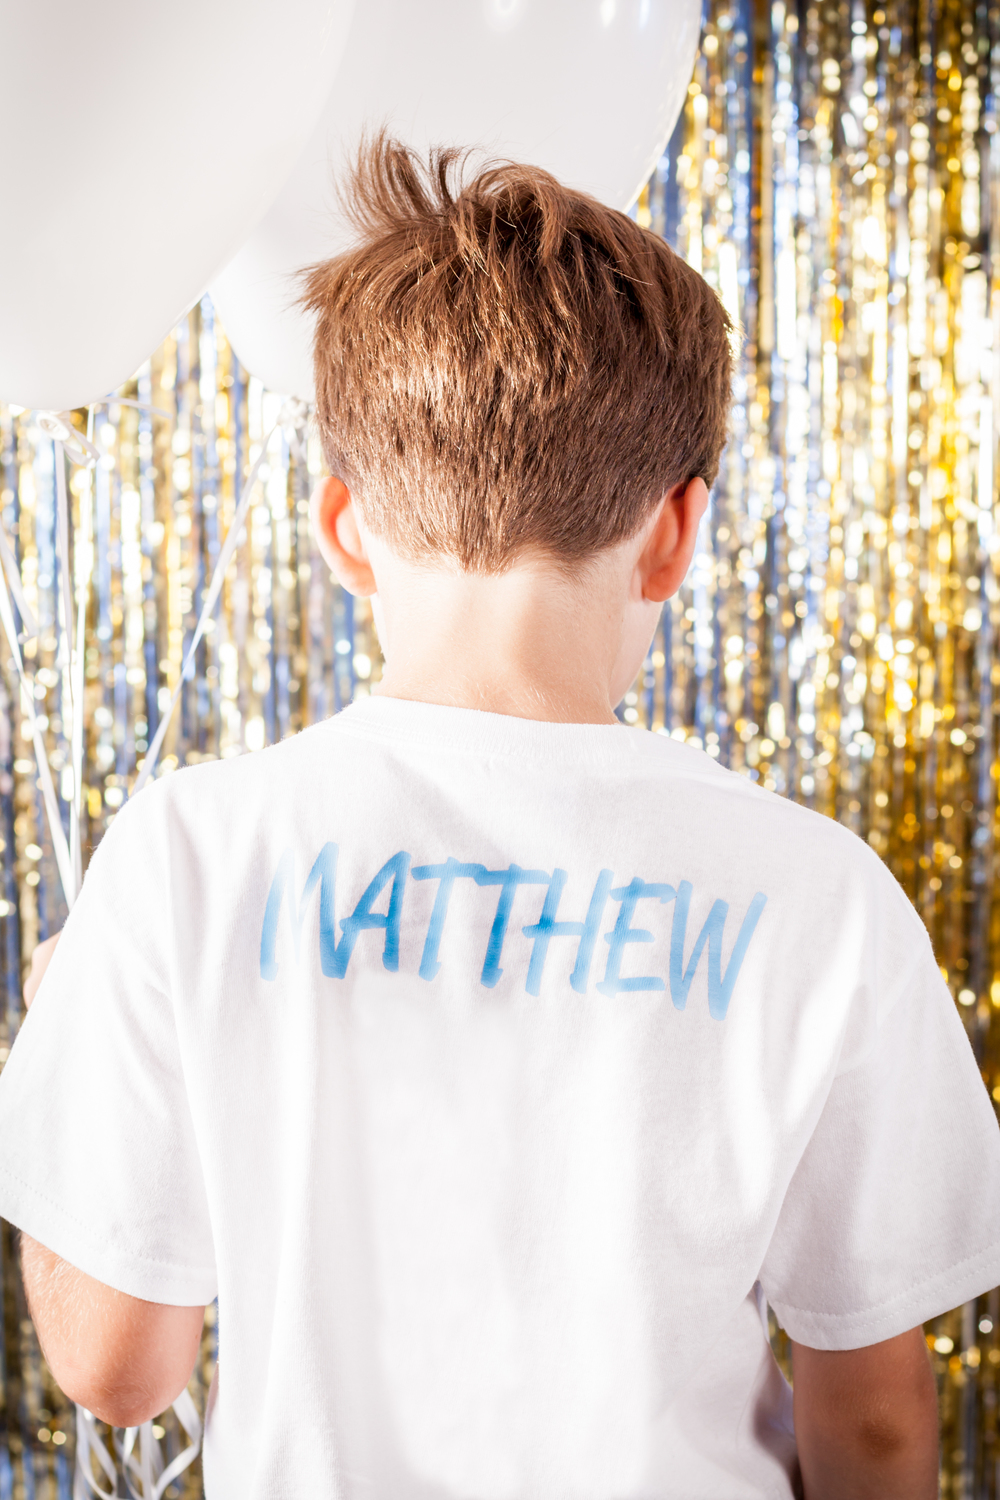 Personalized t-shirt-www.thedetaileddiva.com.jpg